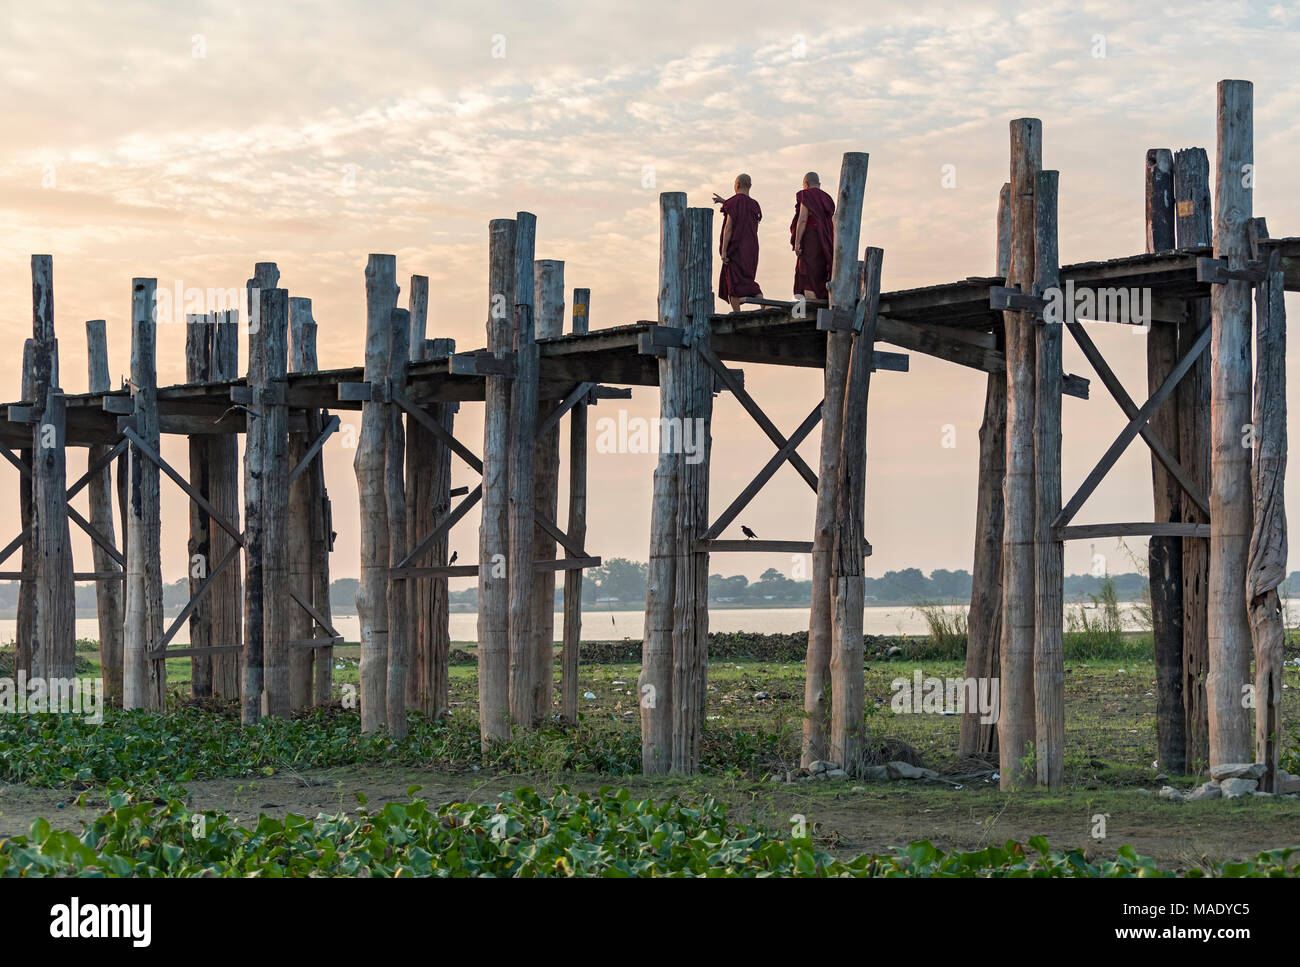 Buddhist monks walk on the U Bein Bridge in Amarapura near Mandalay, Burma (Myanmar) Stock Photo